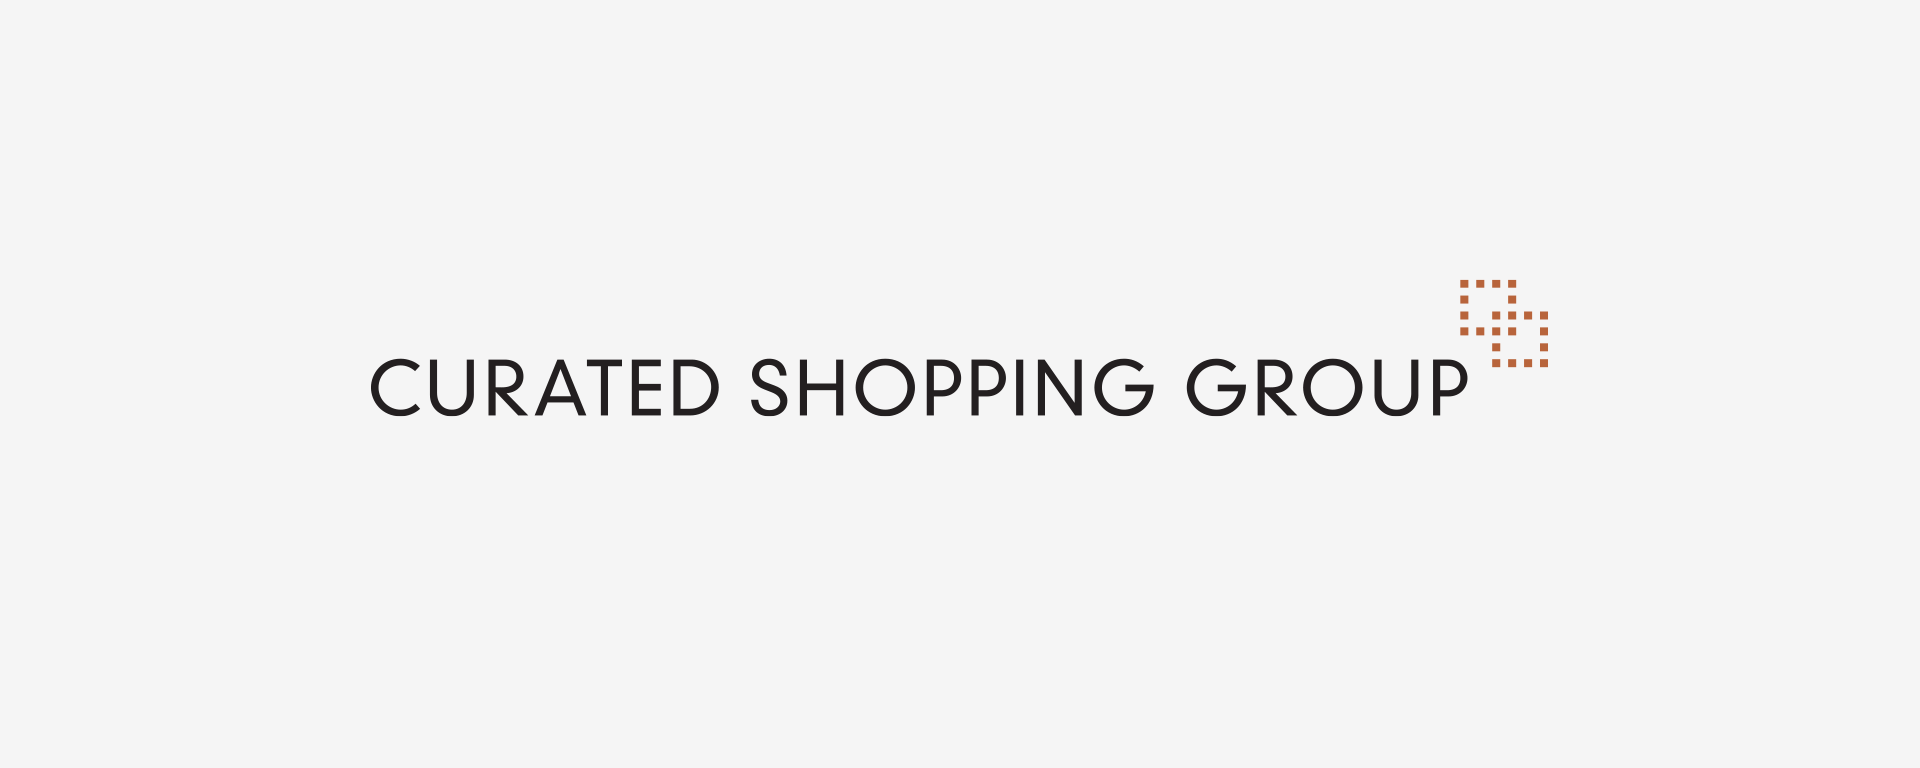 Curated Shopping Group